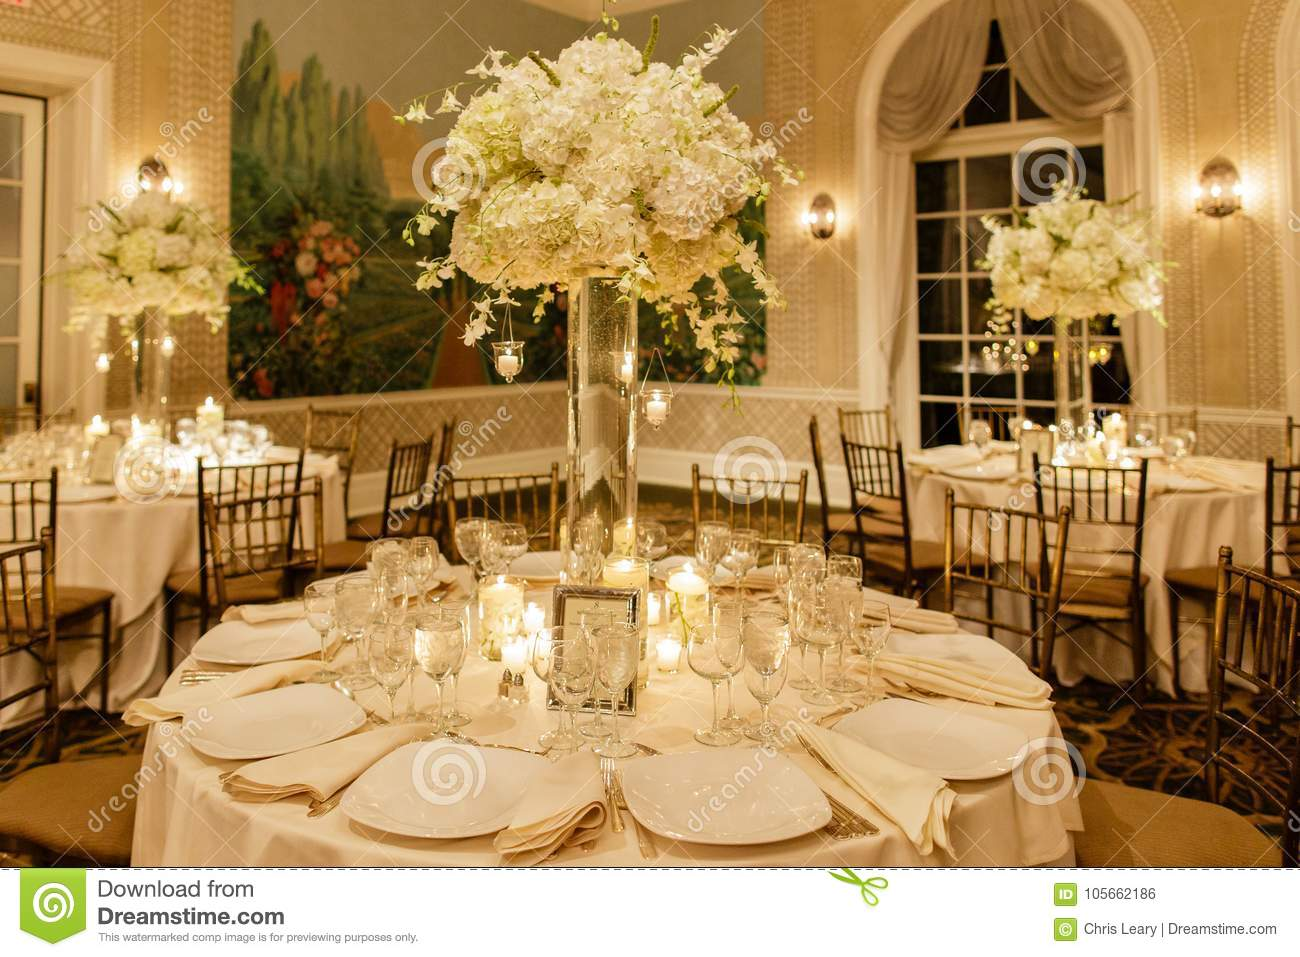 Wedding Table Centerpieces.Wedding Centerpiece Table Set For Reception Stock Photo Image Of